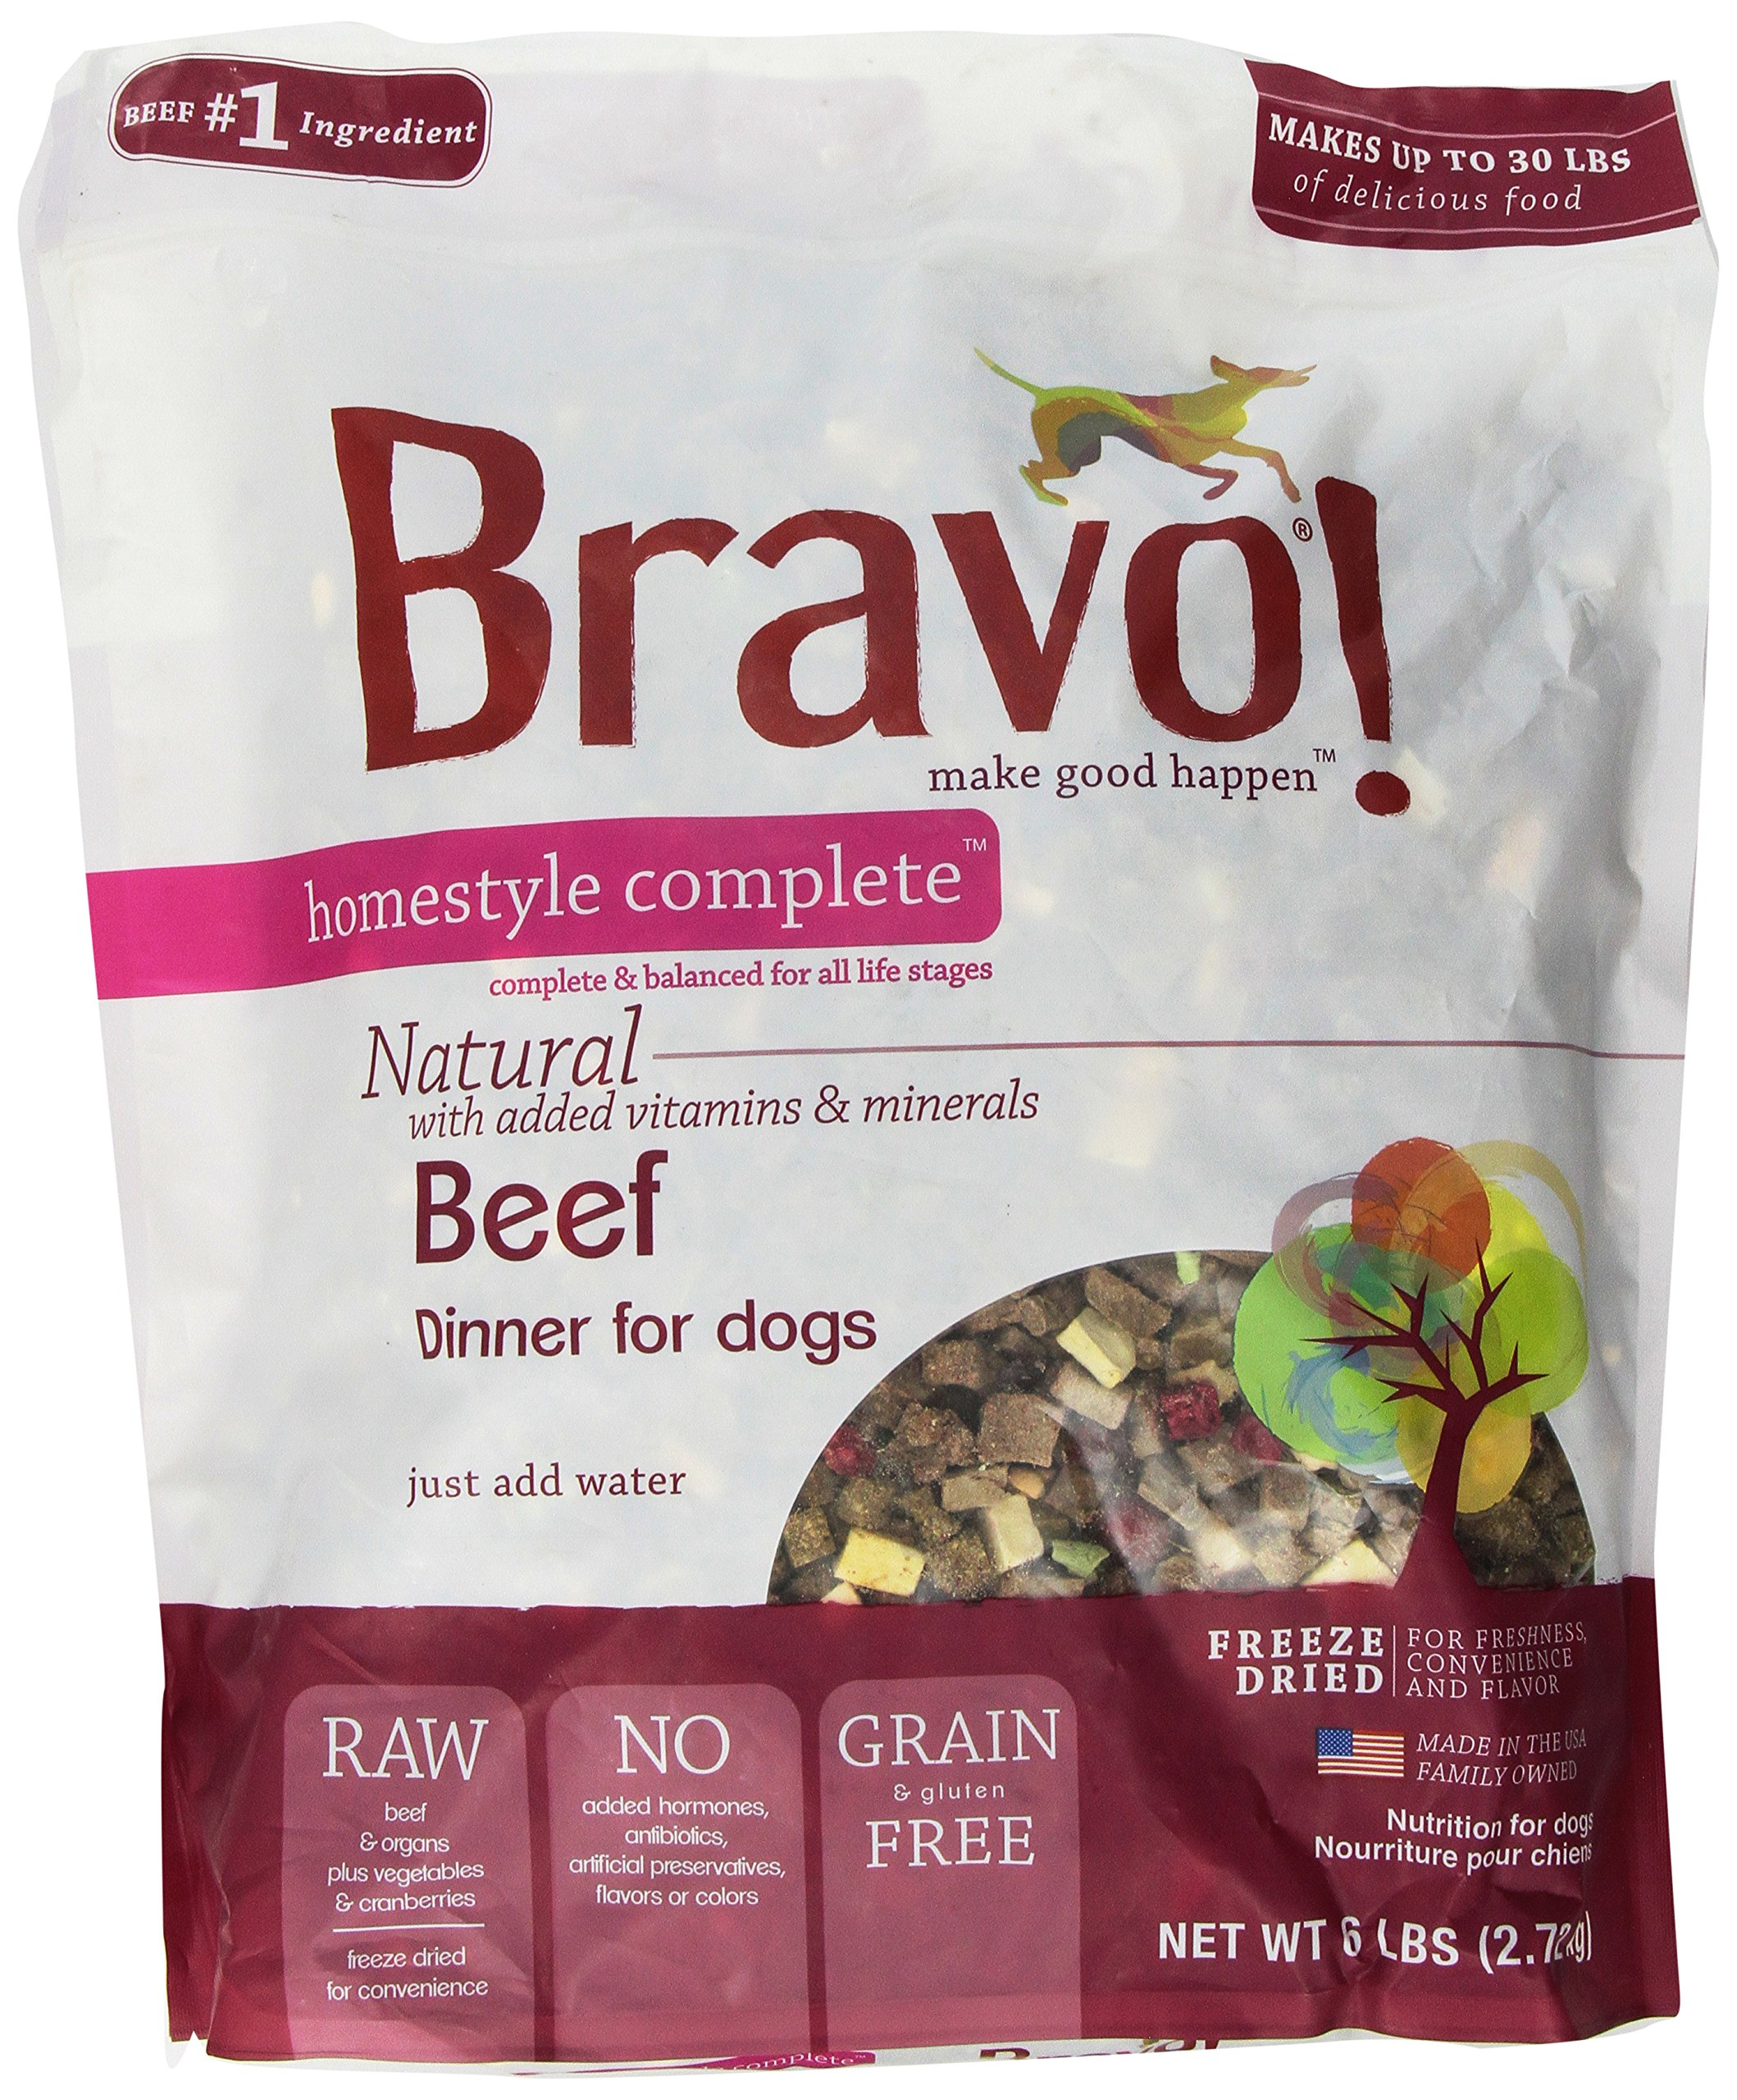 Bravo Homestyle Freeze Dried Dinner Beef Food, 6 lb.